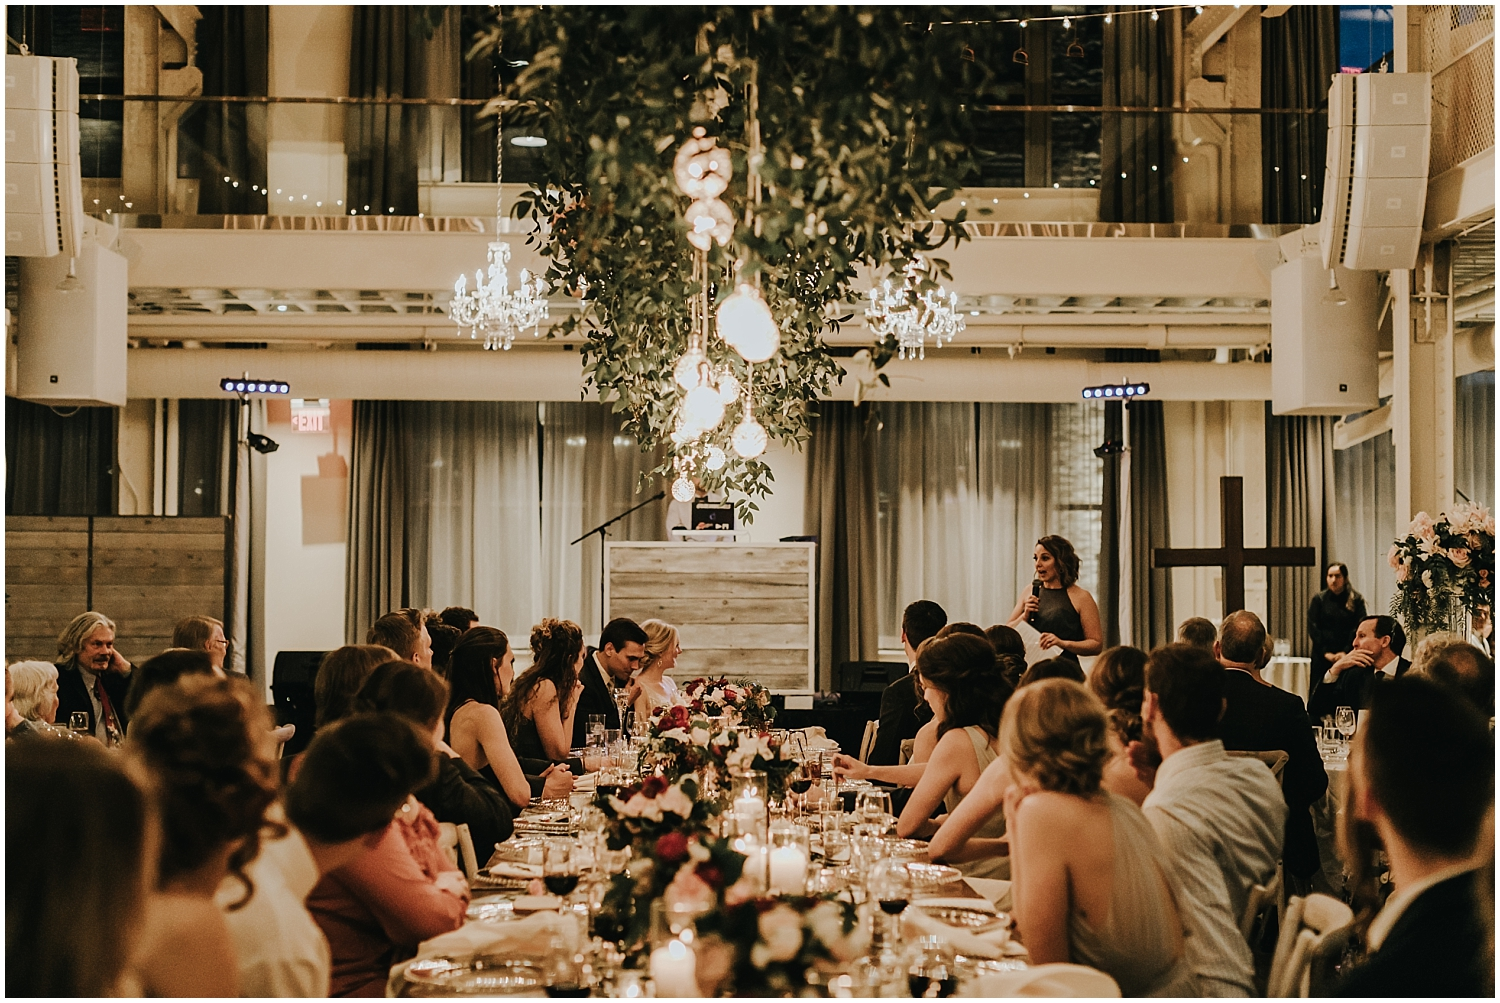 overhead greenery and lights in wedding reception